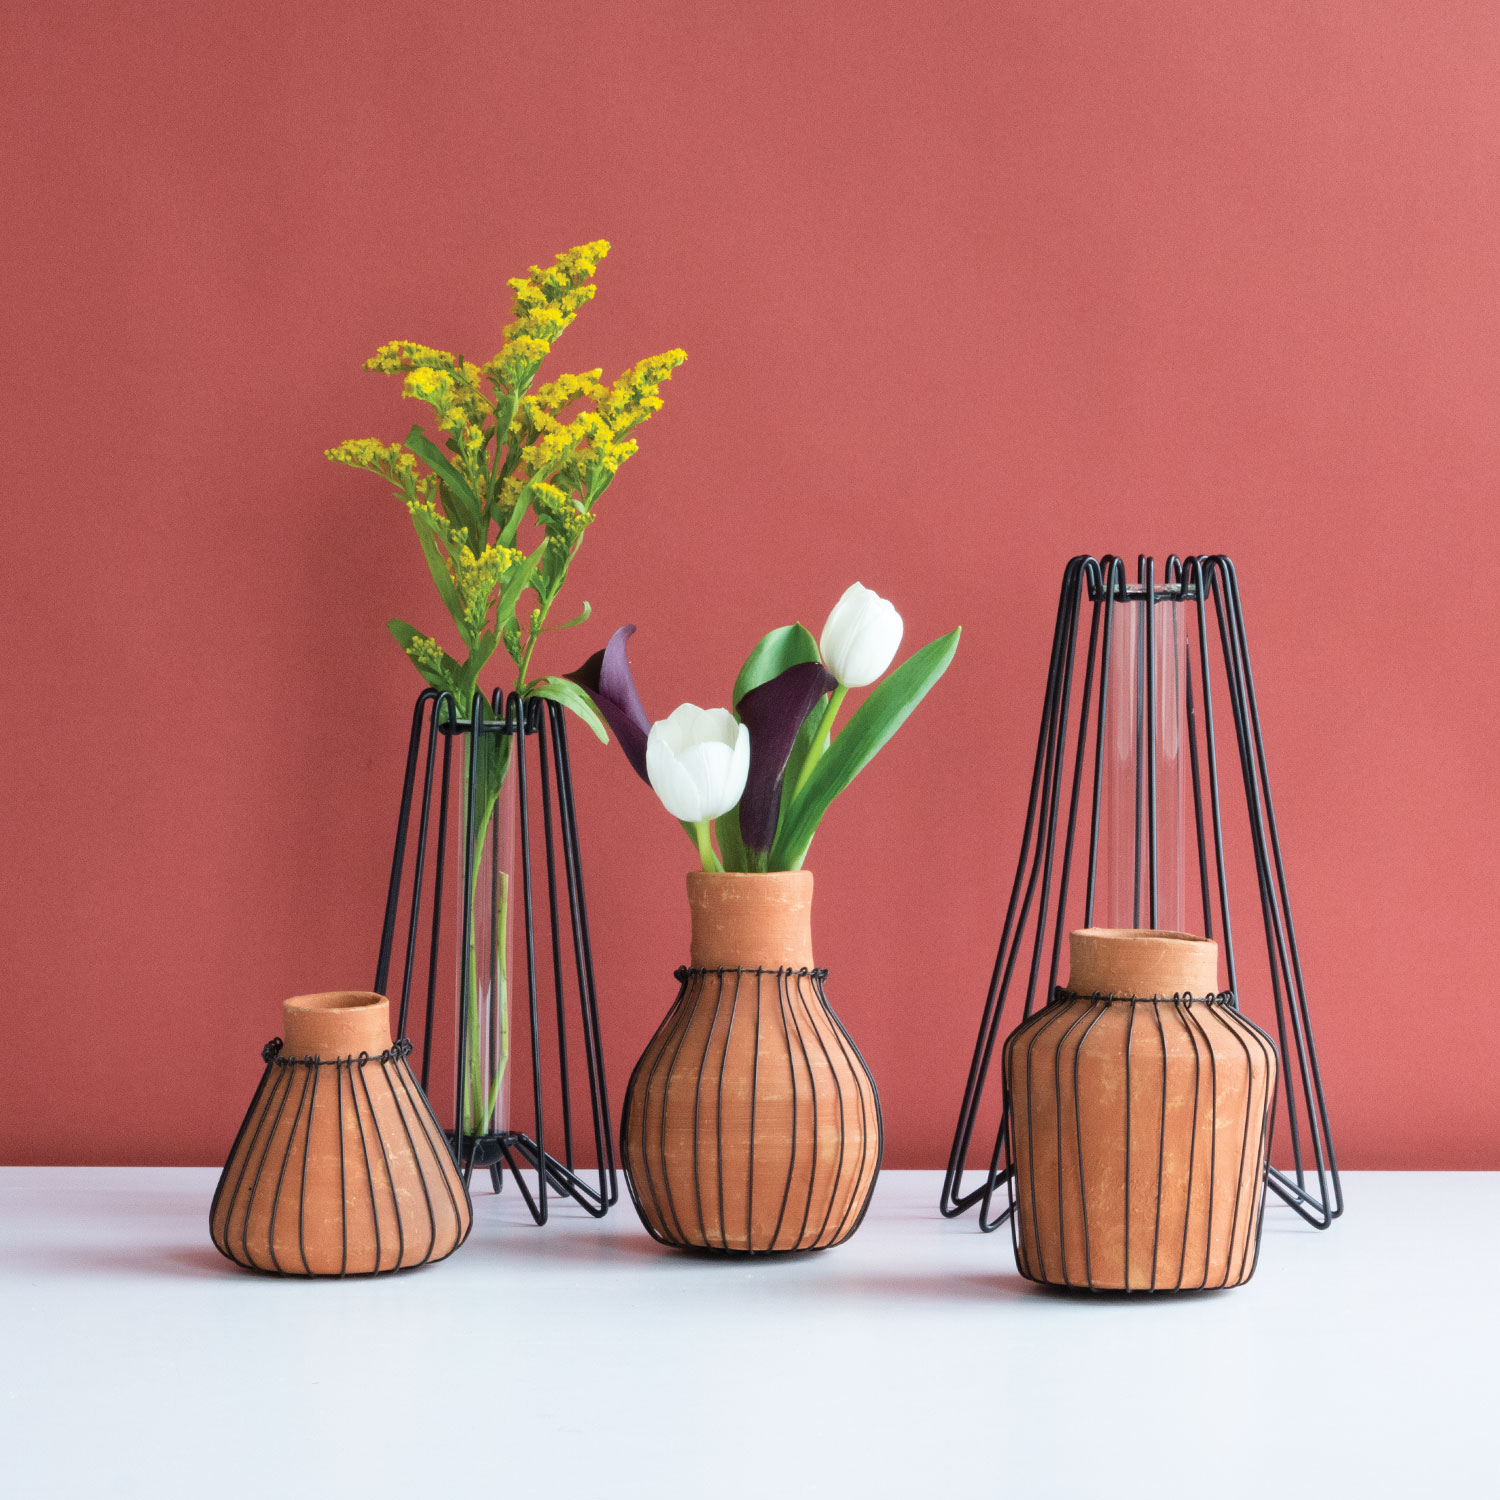 Items Shown:  Terracotta Bud Vases